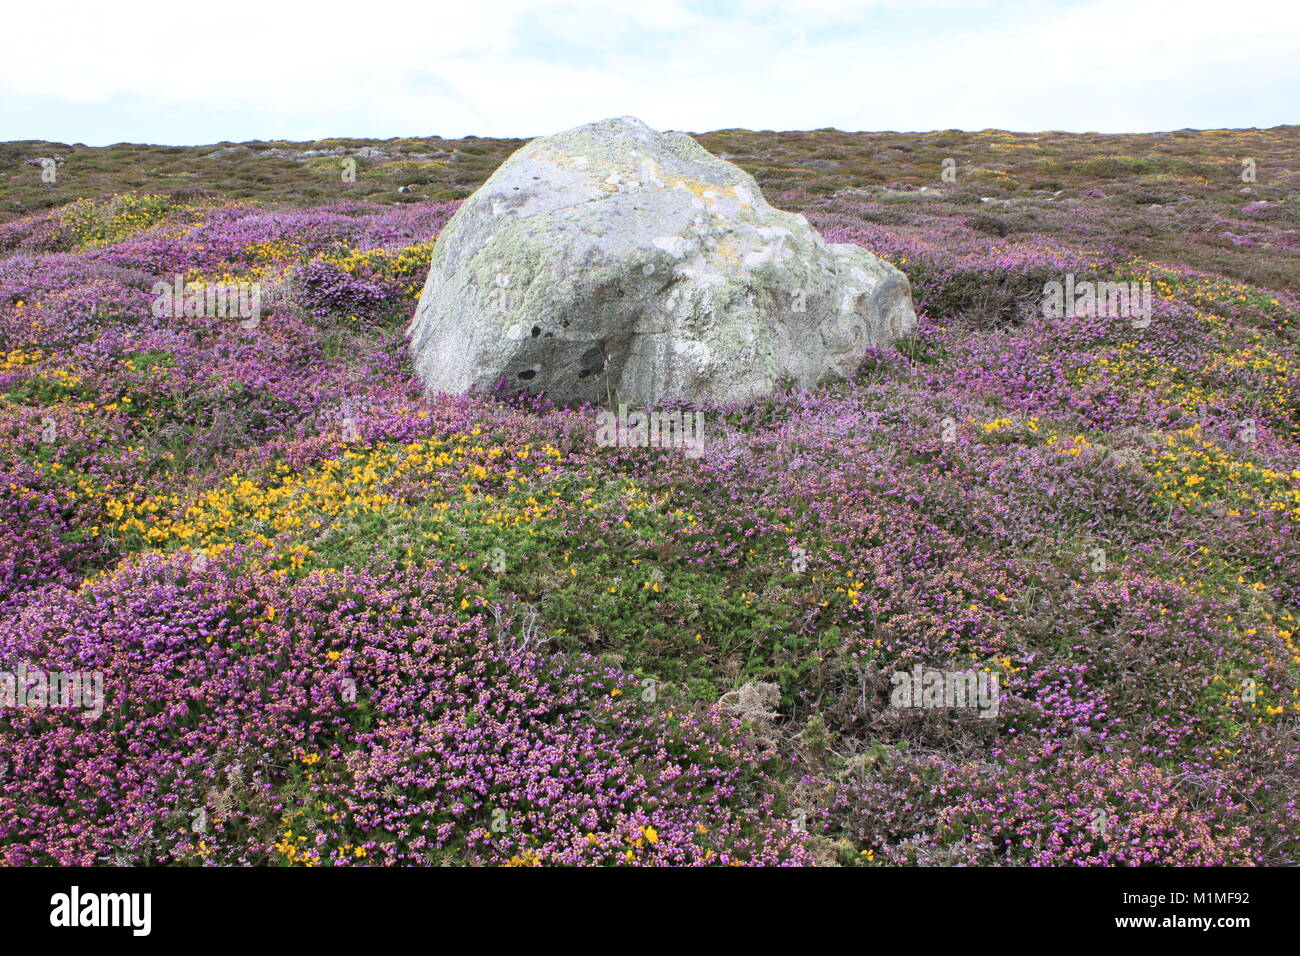 Purple Heather with Granite Rock, Cardigan Bay, Coastal Walk - Stock Image